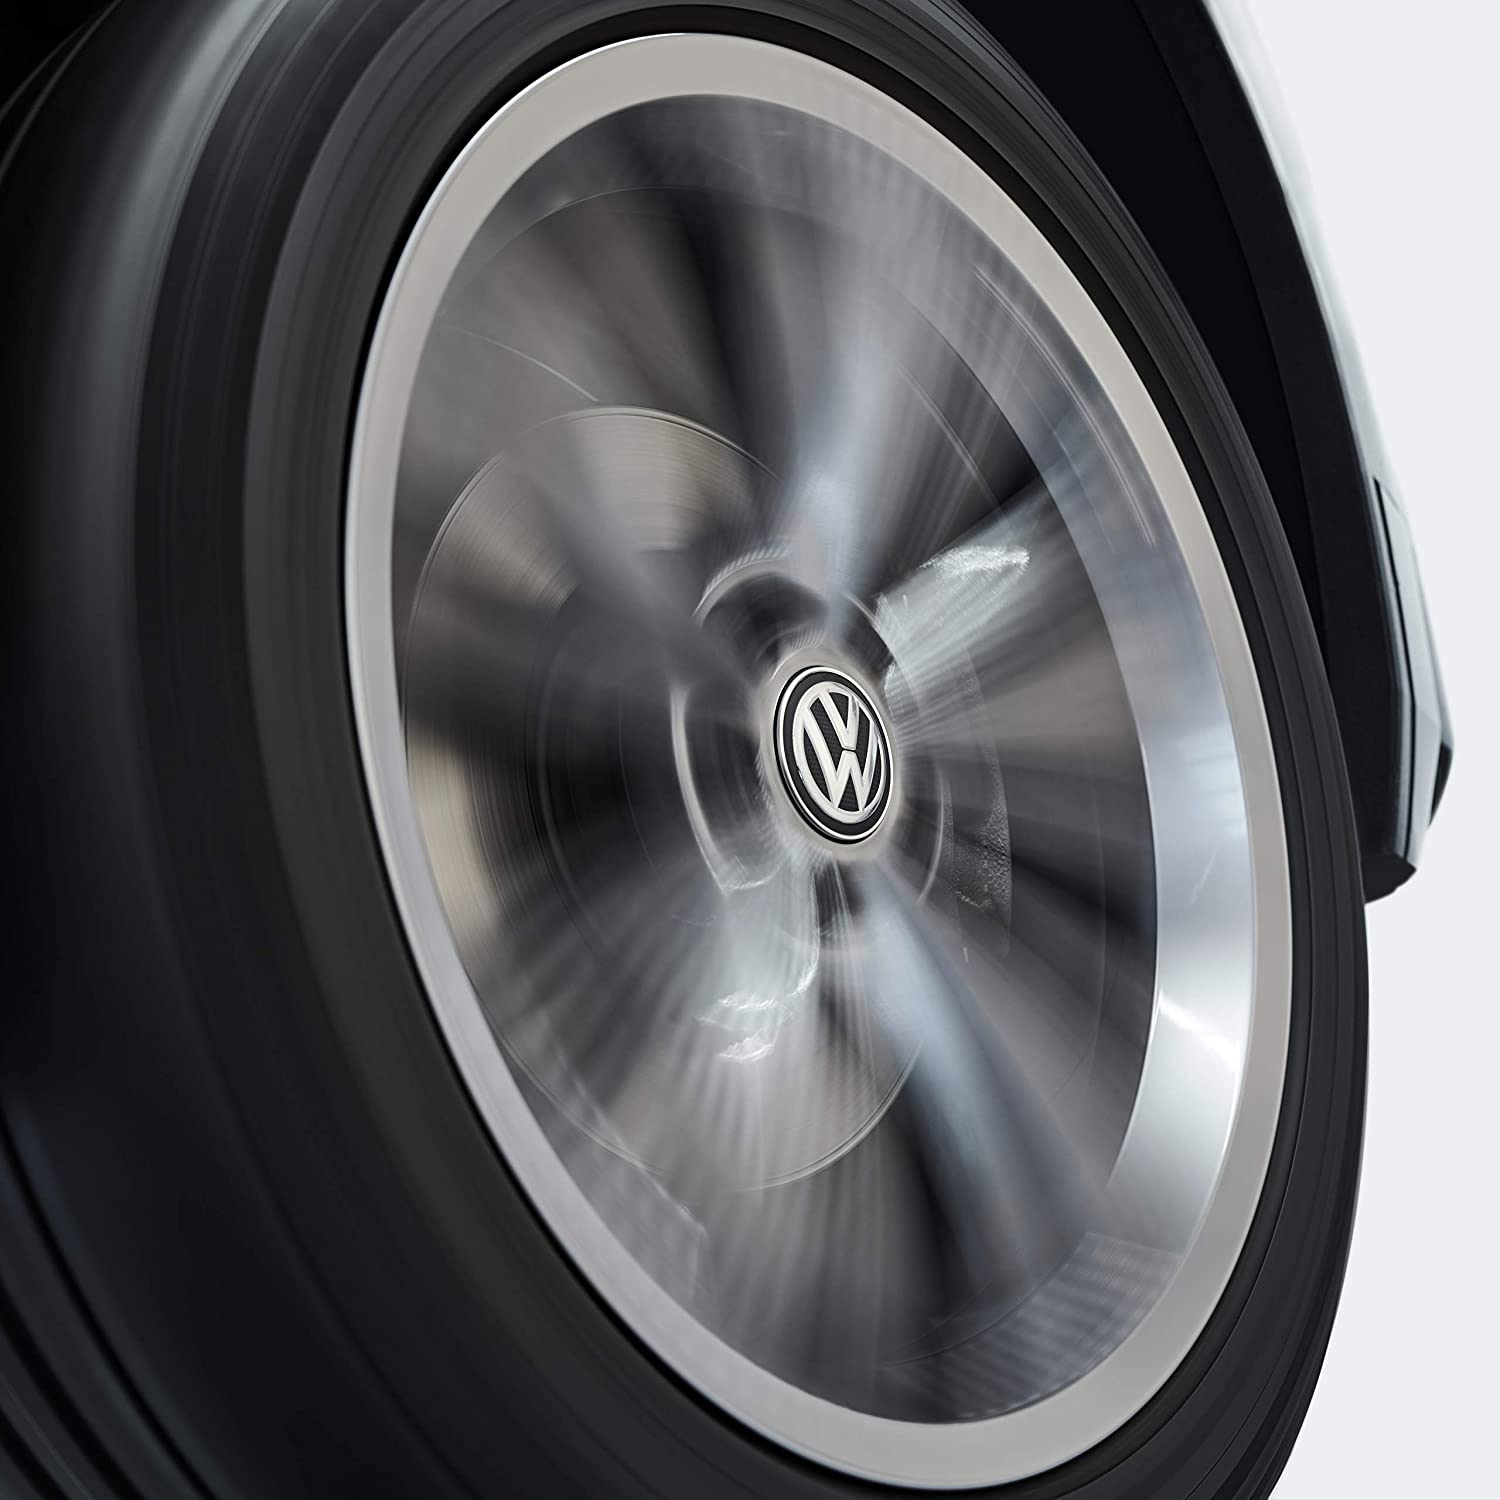 Volkswagen 000071213C Dynamical Hub Cap for LM Rims with Standing Logo in Driving Operation